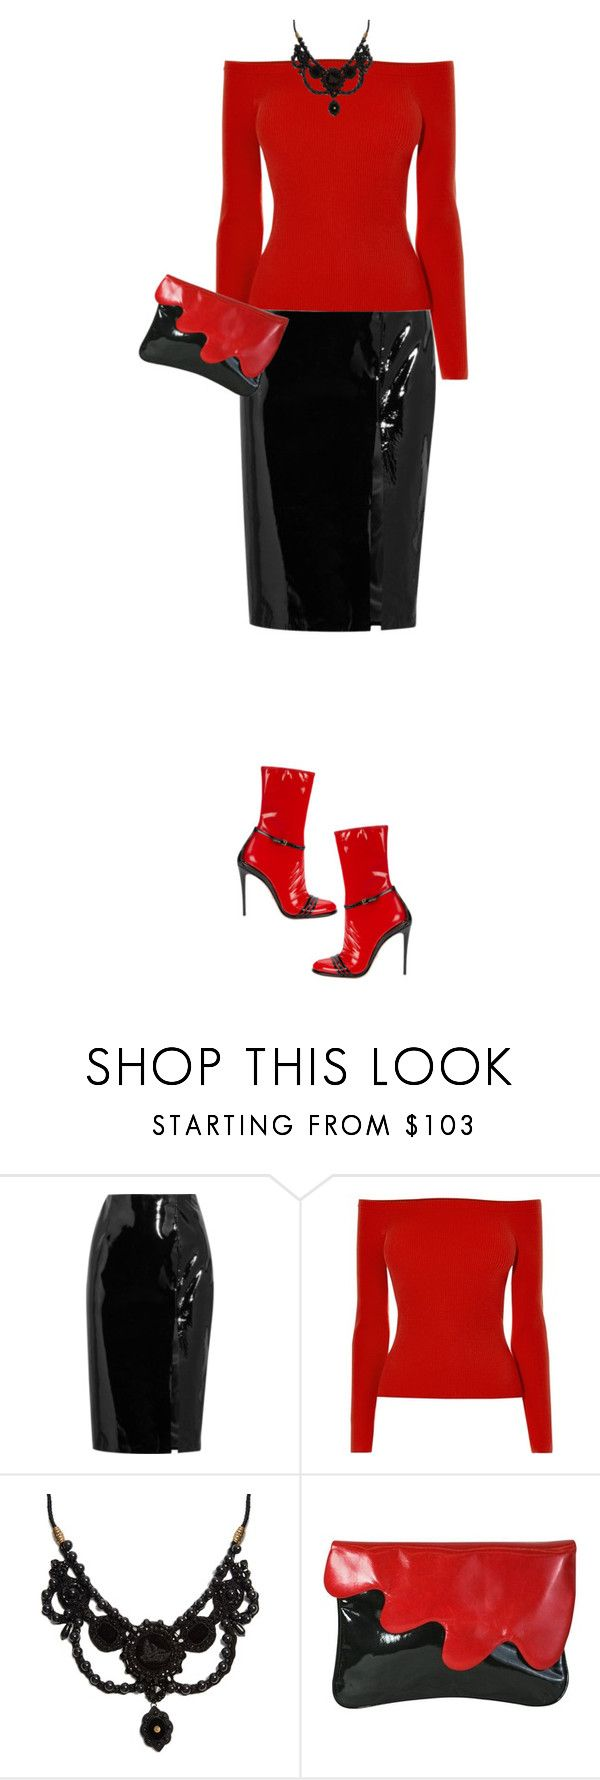 """""""Patent Leather"""" by marion-fashionista-diva-miller ❤ liked on Polyvore featuring Topshop Unique, Karen Millen, Gucci, Luciano Padovan, patentleather and contestentry"""